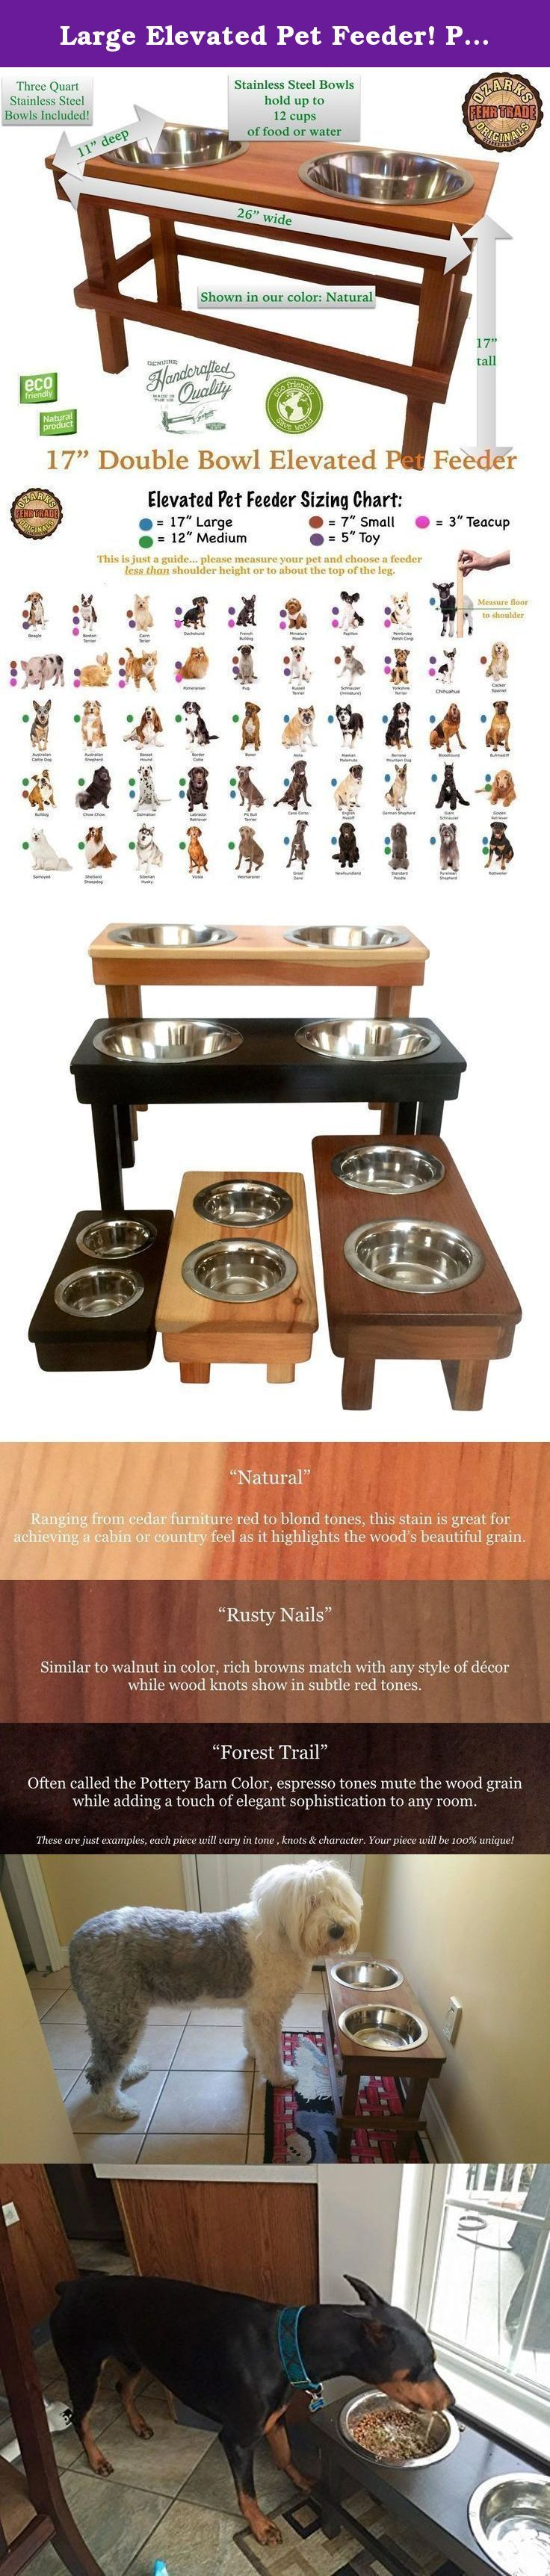 """Large Elevated Pet Feeder! Pet Safe/Ultra Durable Finish! 100% Non-Toxic & Eco-Friendly Raised Dog Bowls! Order by Noon Central time (M-F) & we ship the same day - Check out our delivery chart. In Stock!! We make pet feeders from 3"""" tall to 17"""" tall! Search """"Ozarks Fehr Trade Originals"""" on Amazon to see all our sizes and options! Our stains & finishes are natural ingredients! Natural & Safe, even if your pet eats or licks the finish Allergen Free! Gluten Free! Non-toxic, Kid & Pet…"""